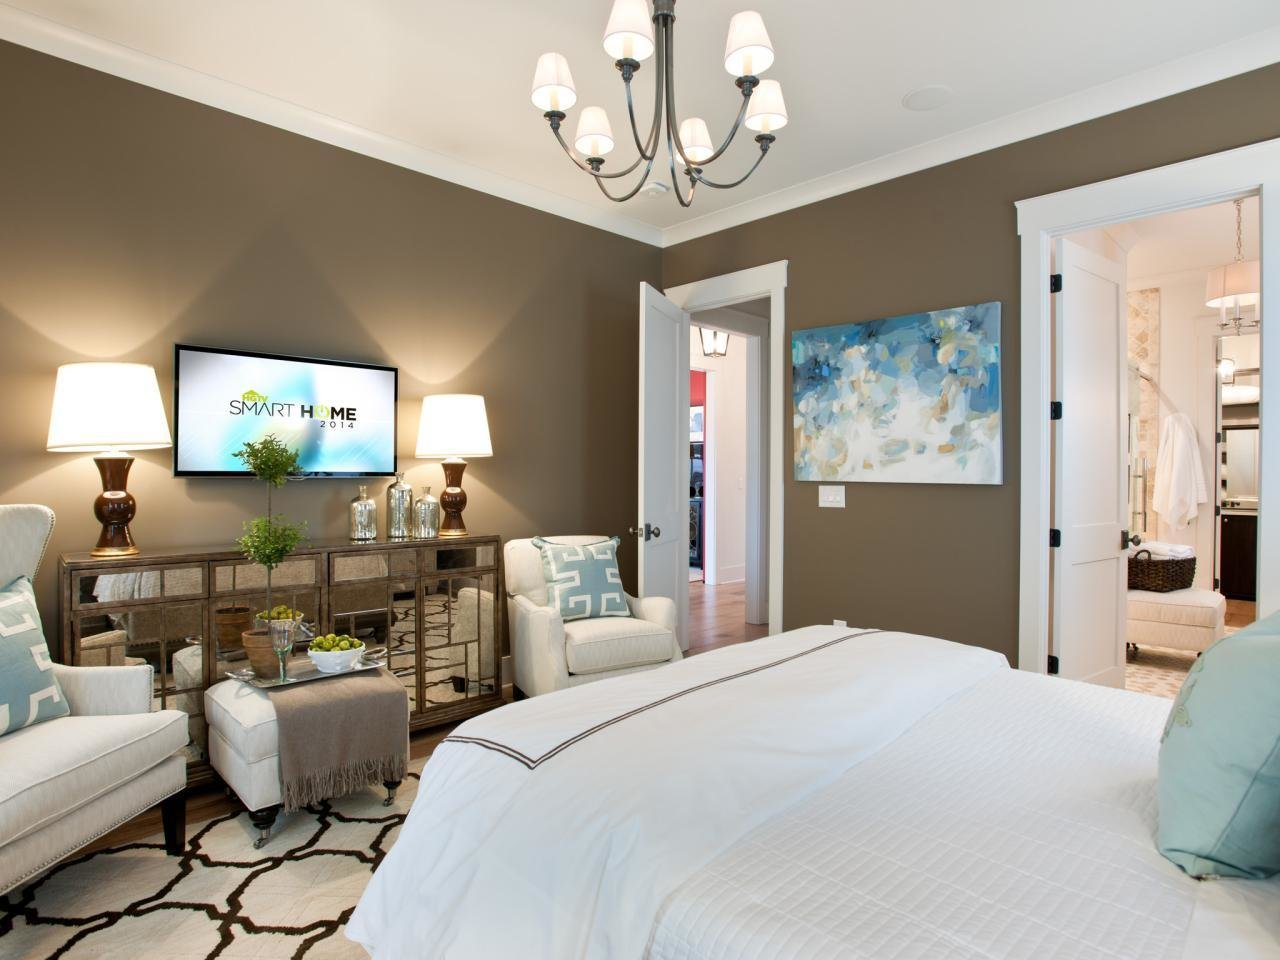 Best Master Bedroom From Hgtv Smart Home 2014 Hgtv Smart Home With Pictures